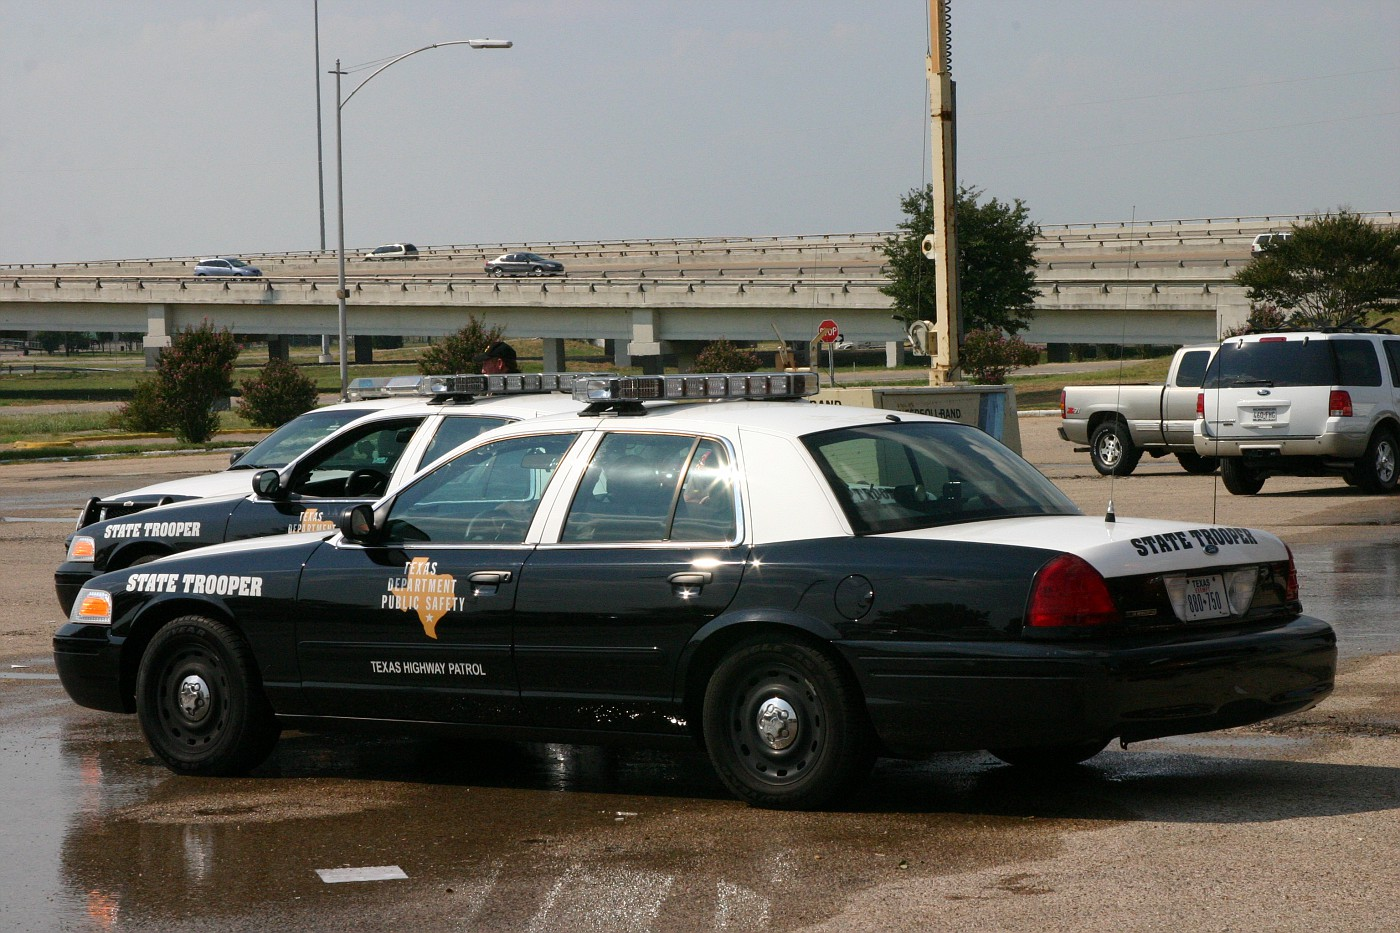 Texas Dept of Public Safety, escort units